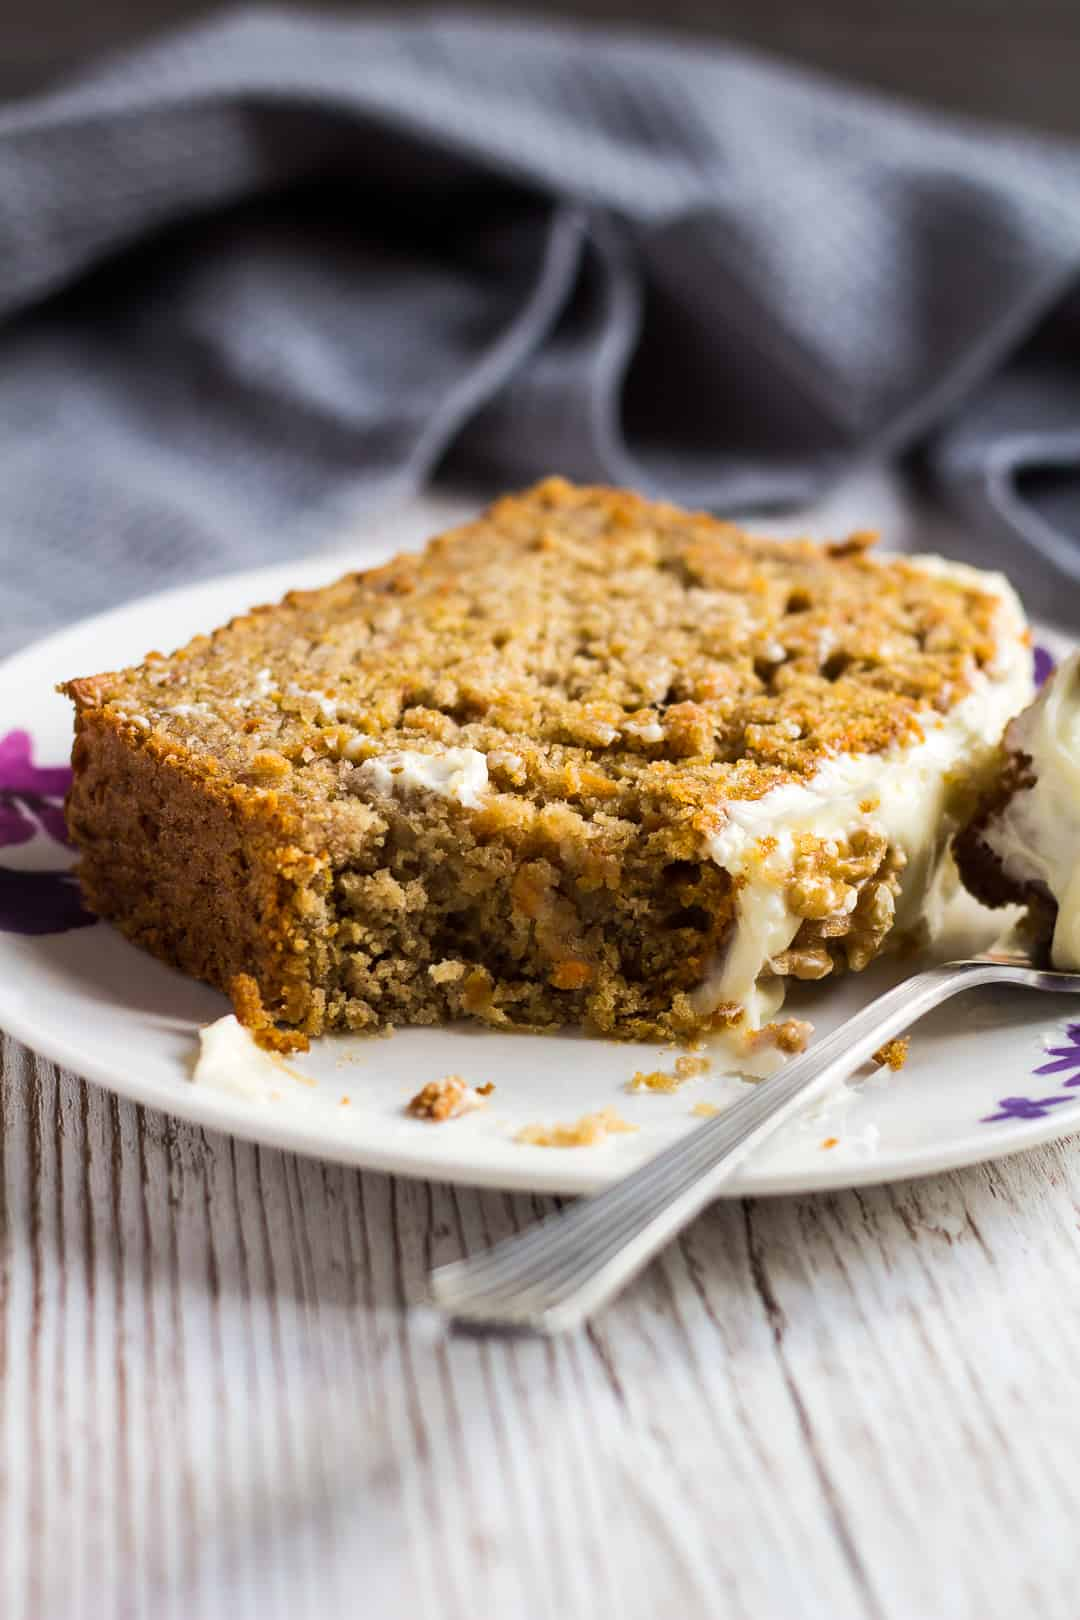 A thick slice of Carrot Cake Loaf topped with cream cheese frosting served on a small white plate with a fork.